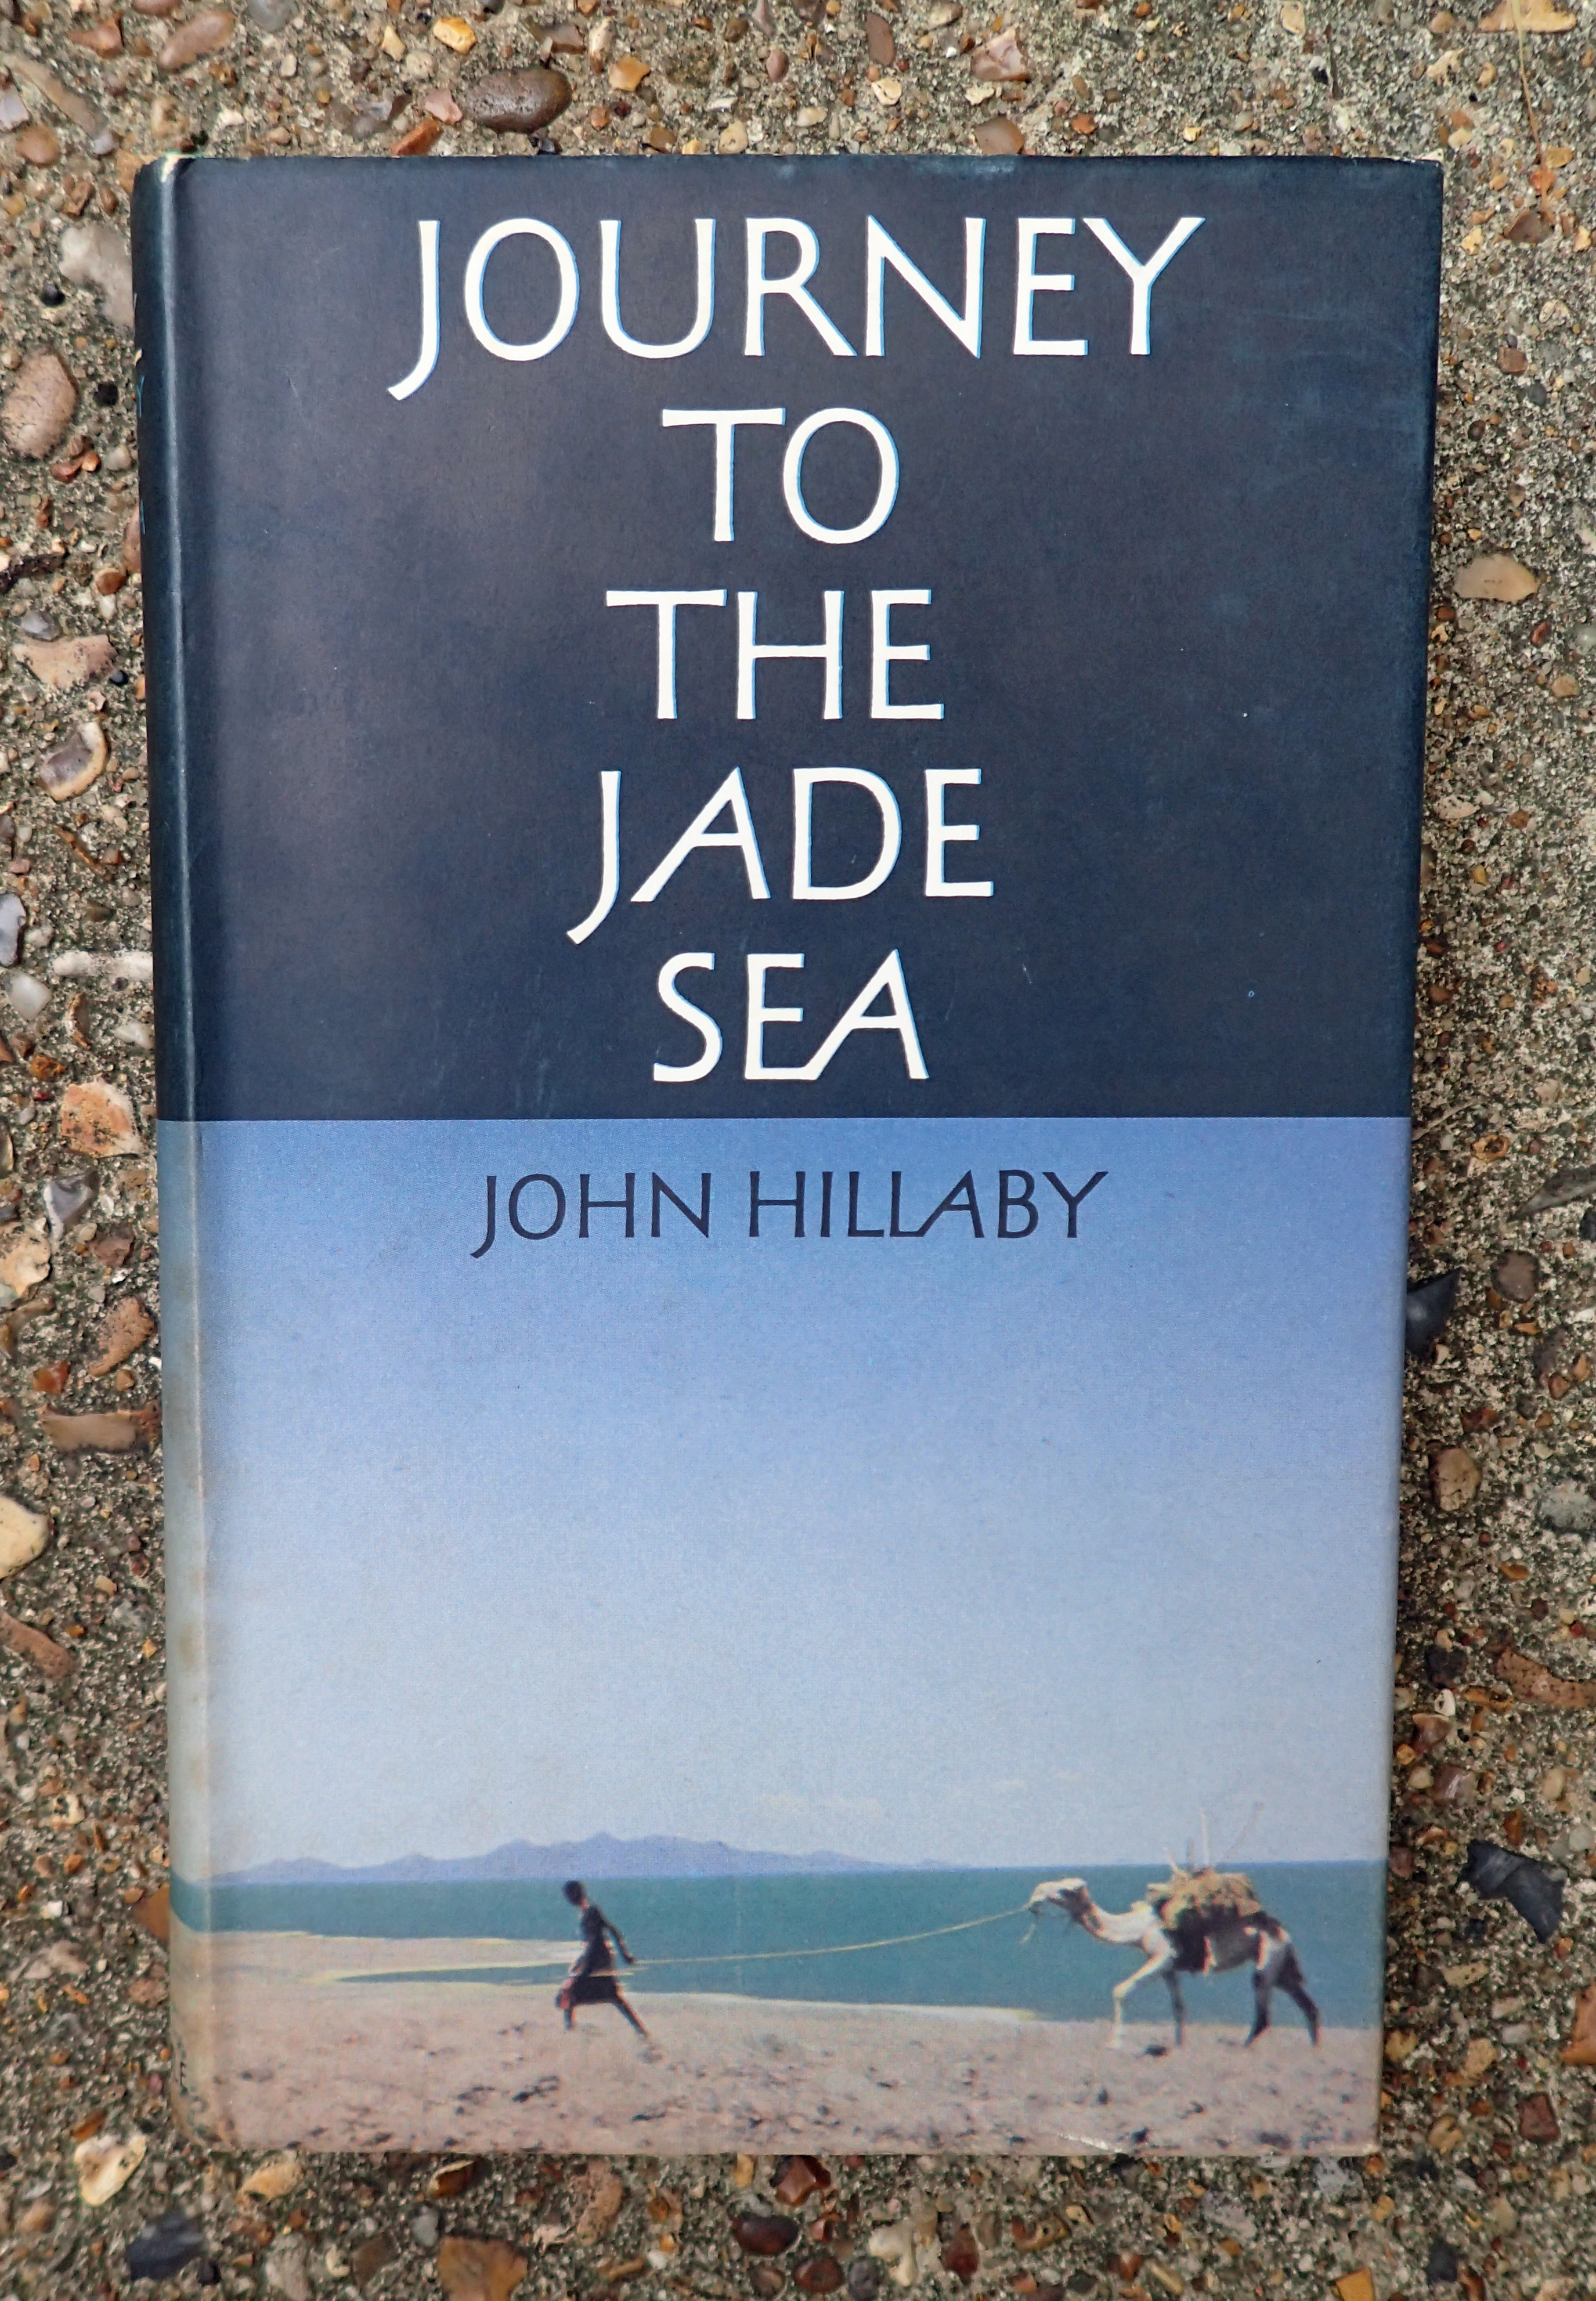 John Hillaby- hiker and author extraordinaire